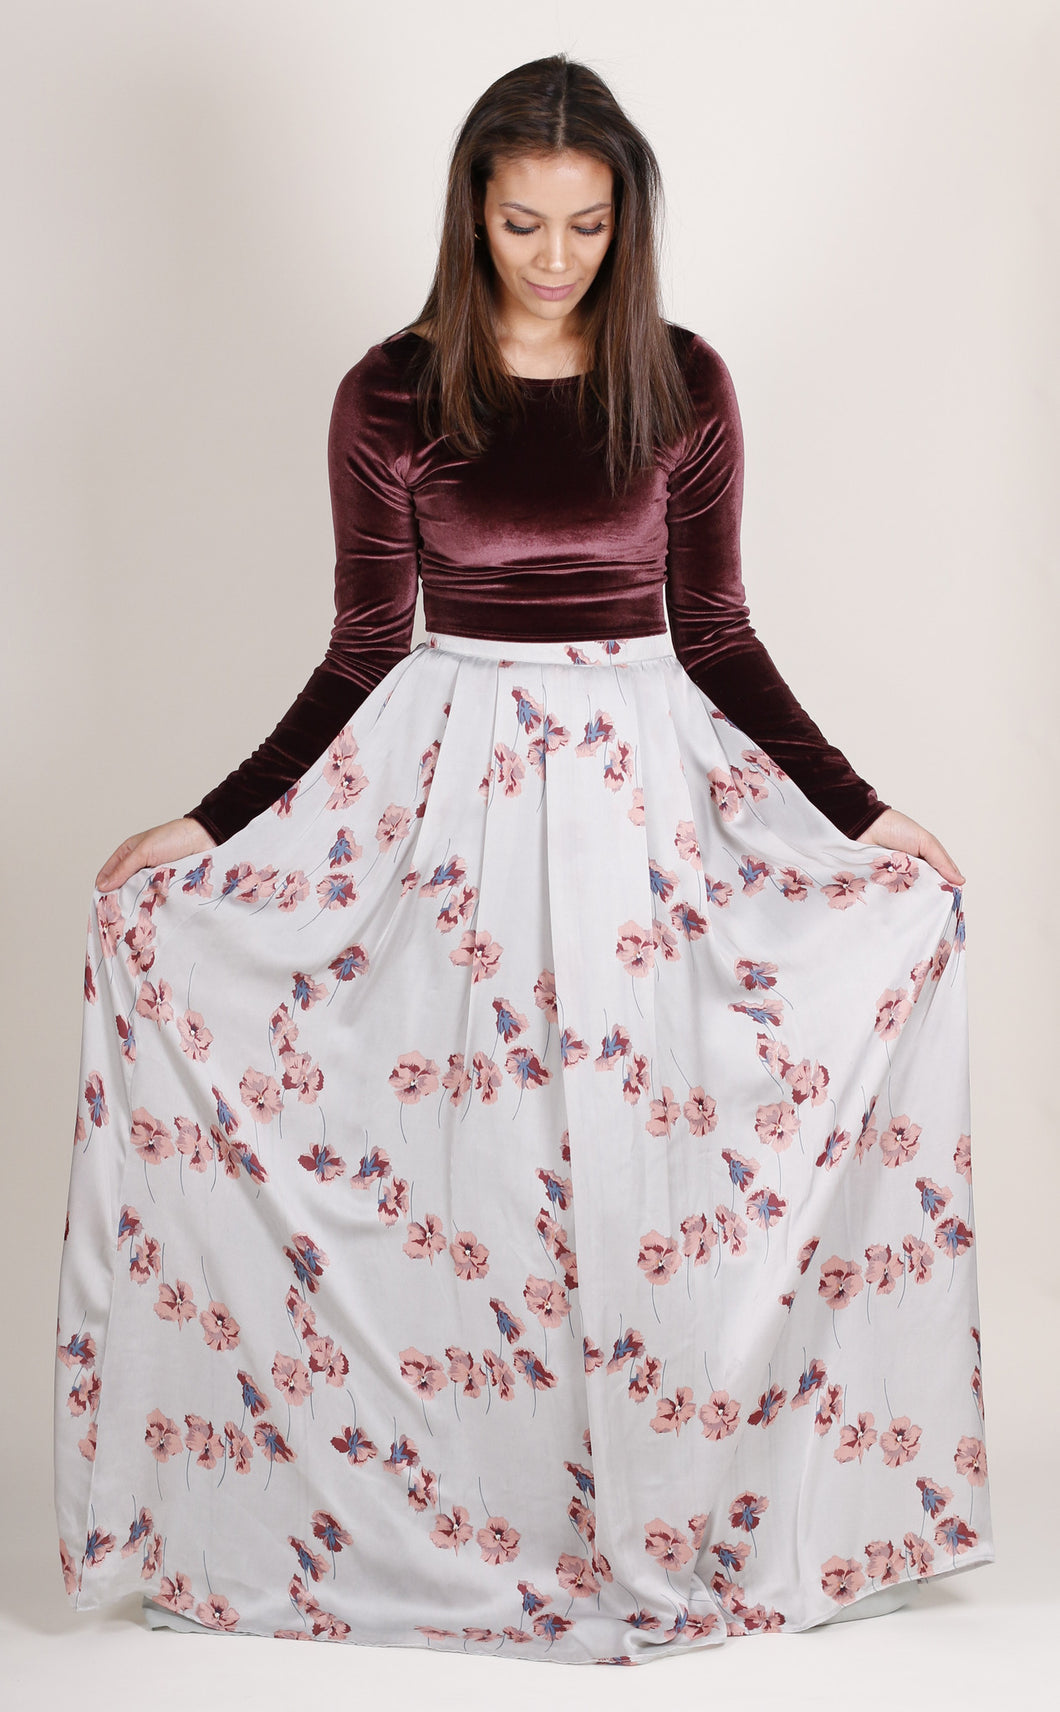 Floral Skirt with Velvet Top